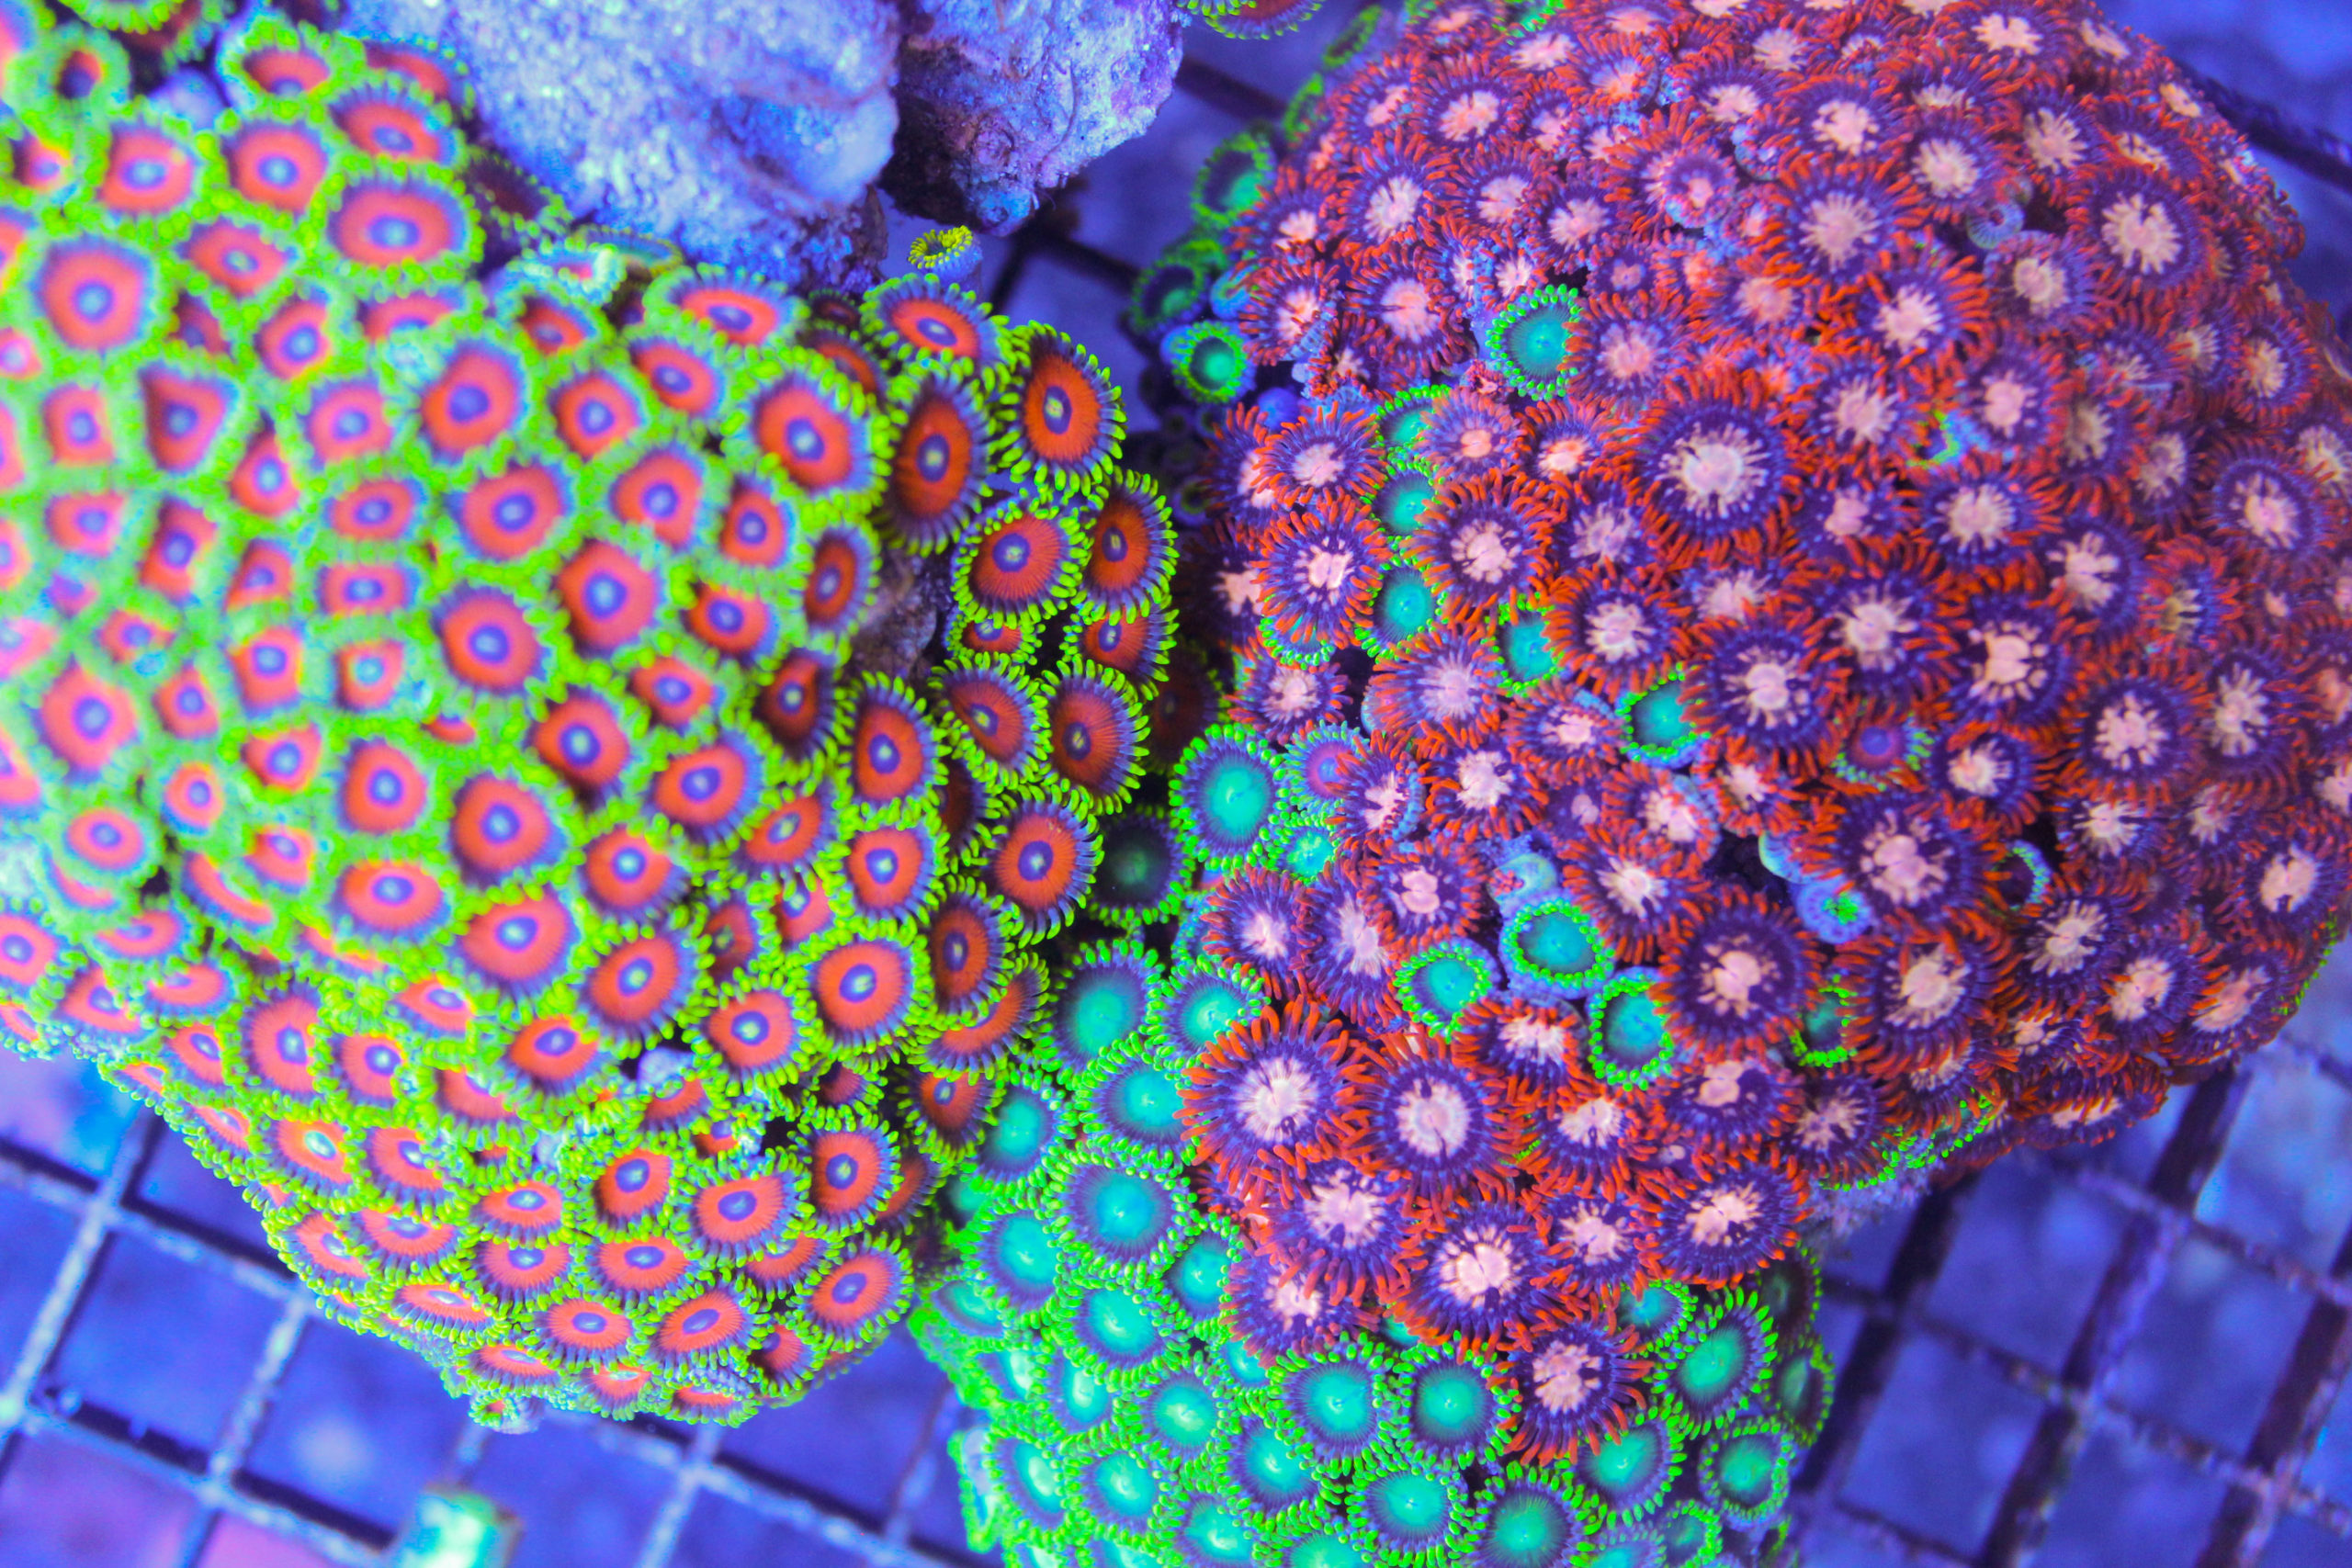 colorful zoanthids